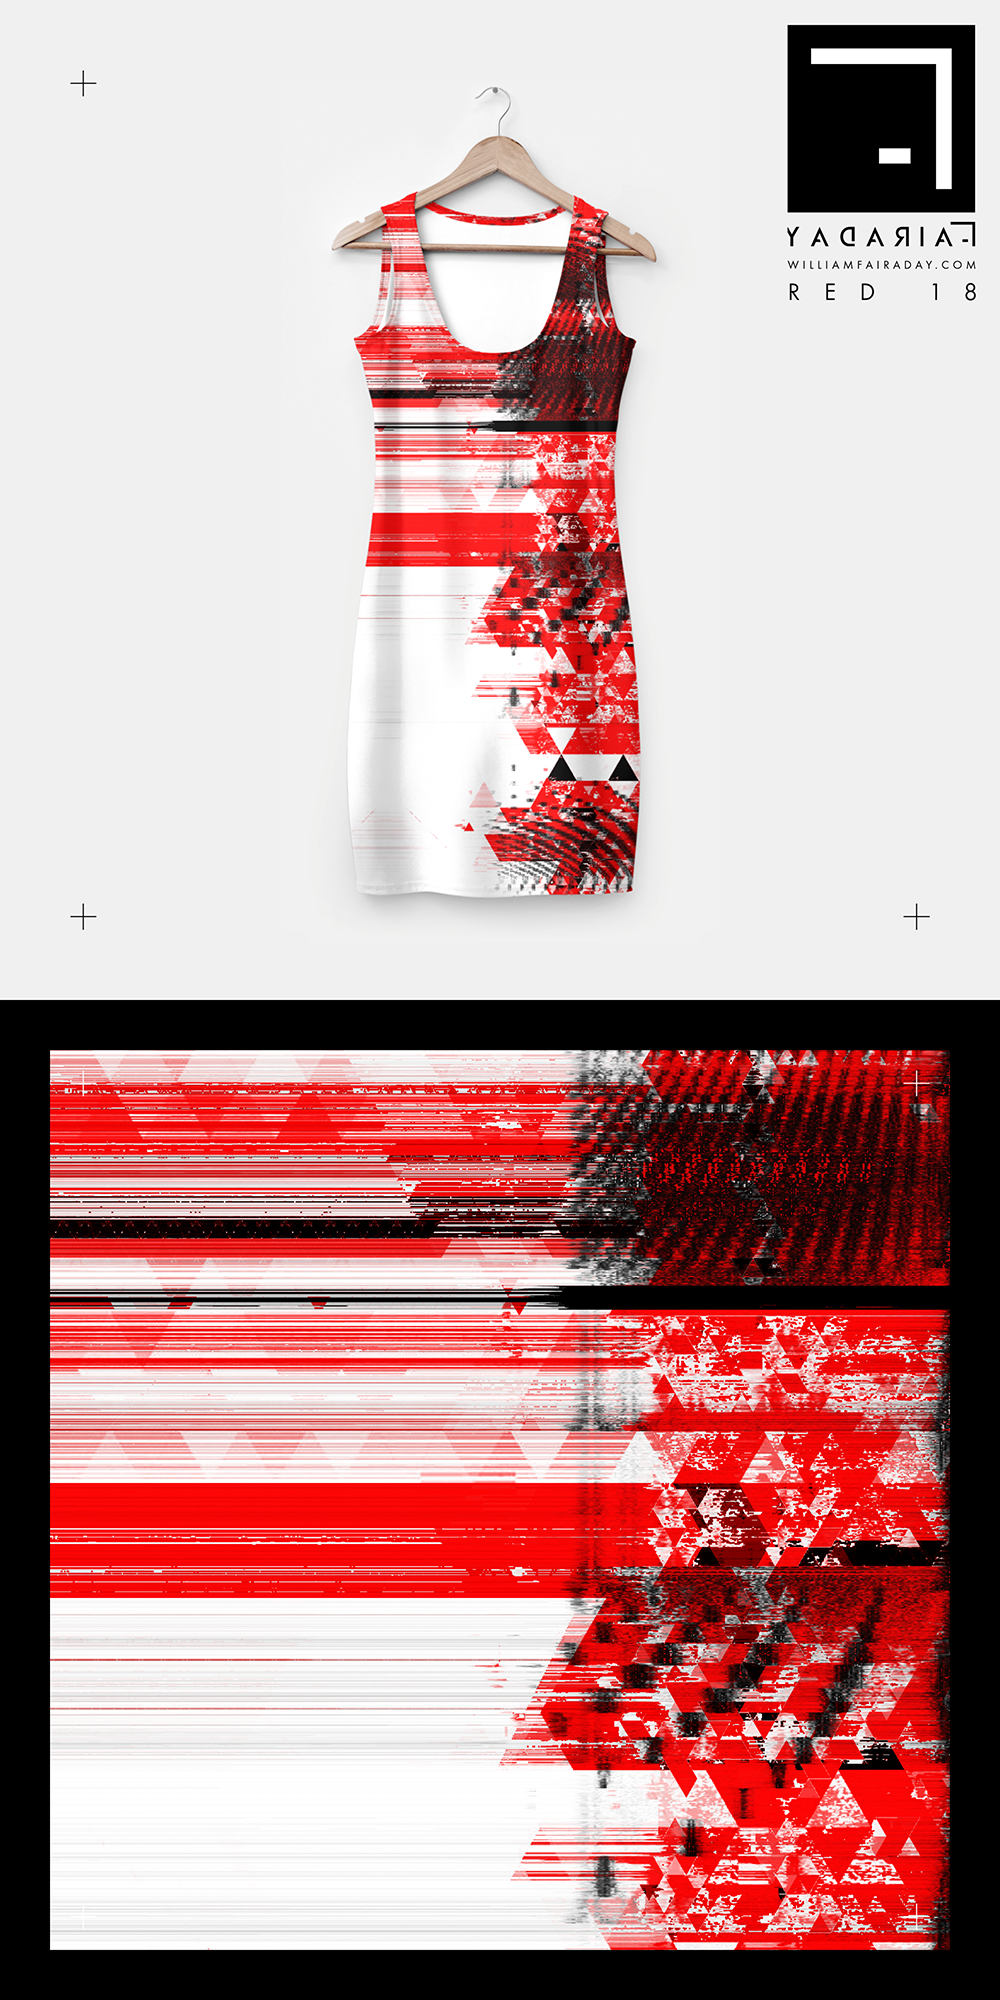 Red 18 Dress 01a.png